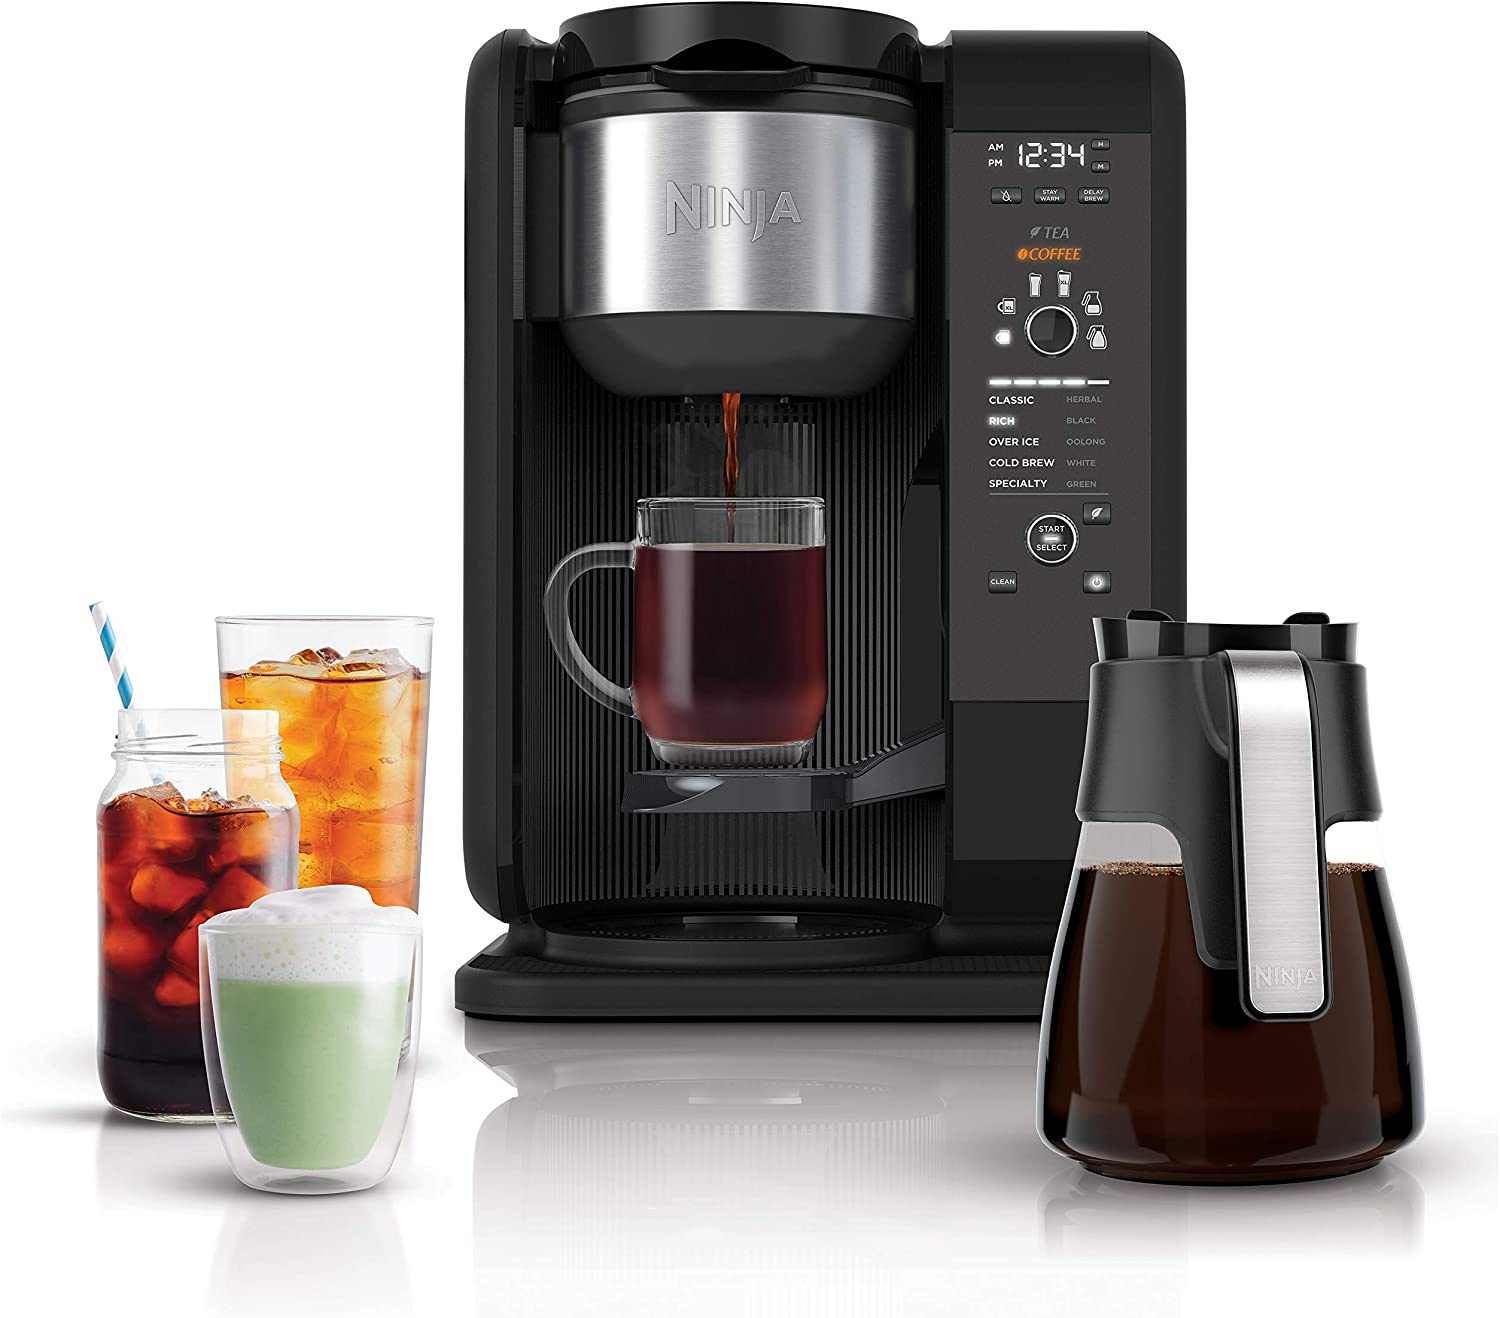 Ninja Hot and Cold Brewed System, Auto-iQ Tea and Coffee Maker with 6 Brew Sizes, 5 Brew Styles, Frother, Coffee & Tea Baskets with Glass Carafe (CP301) B07FDFP6MY